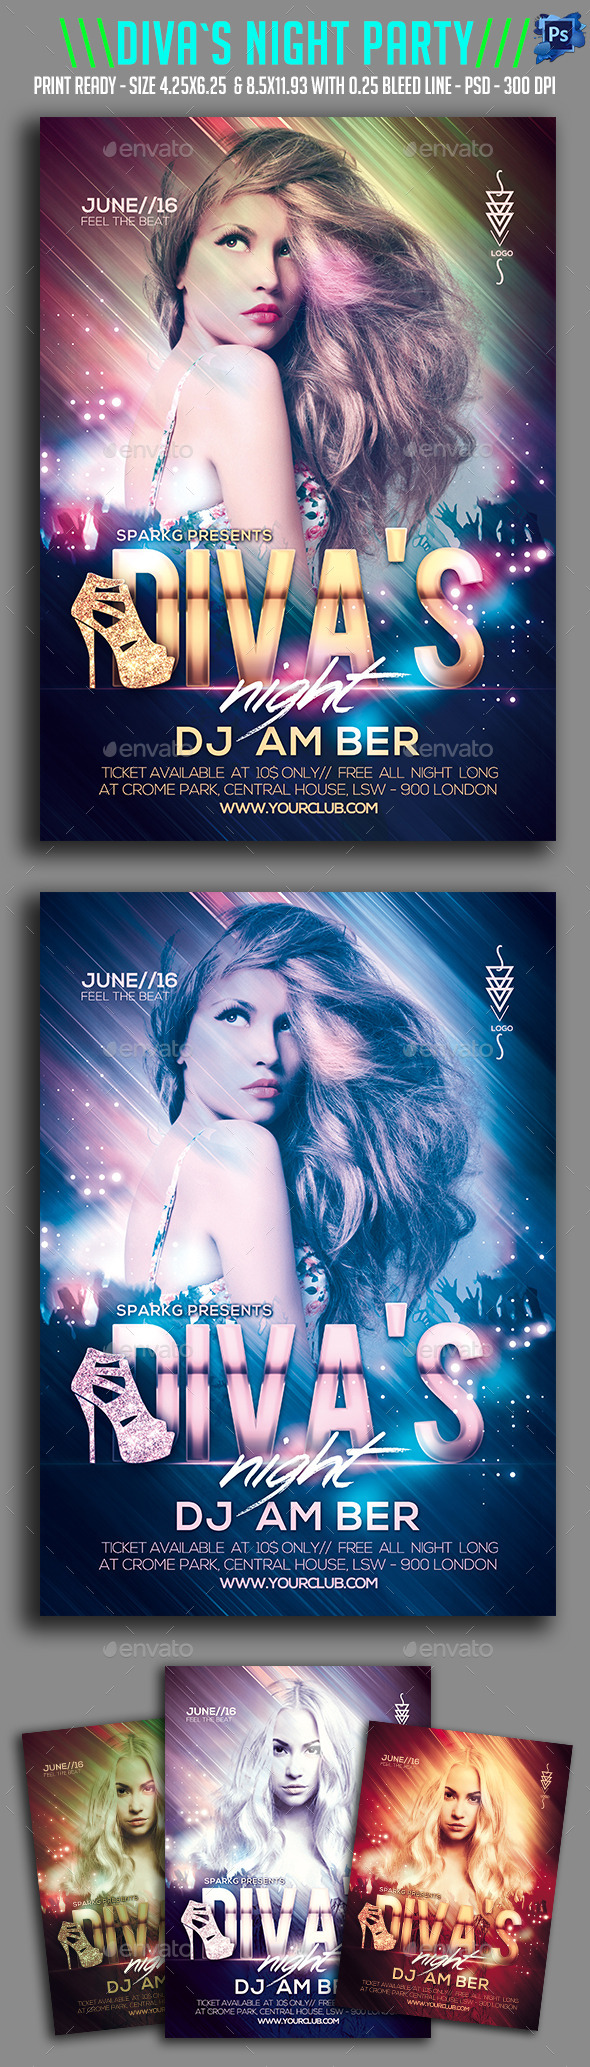 Diva's Night Party Flyer  - Clubs & Parties Events